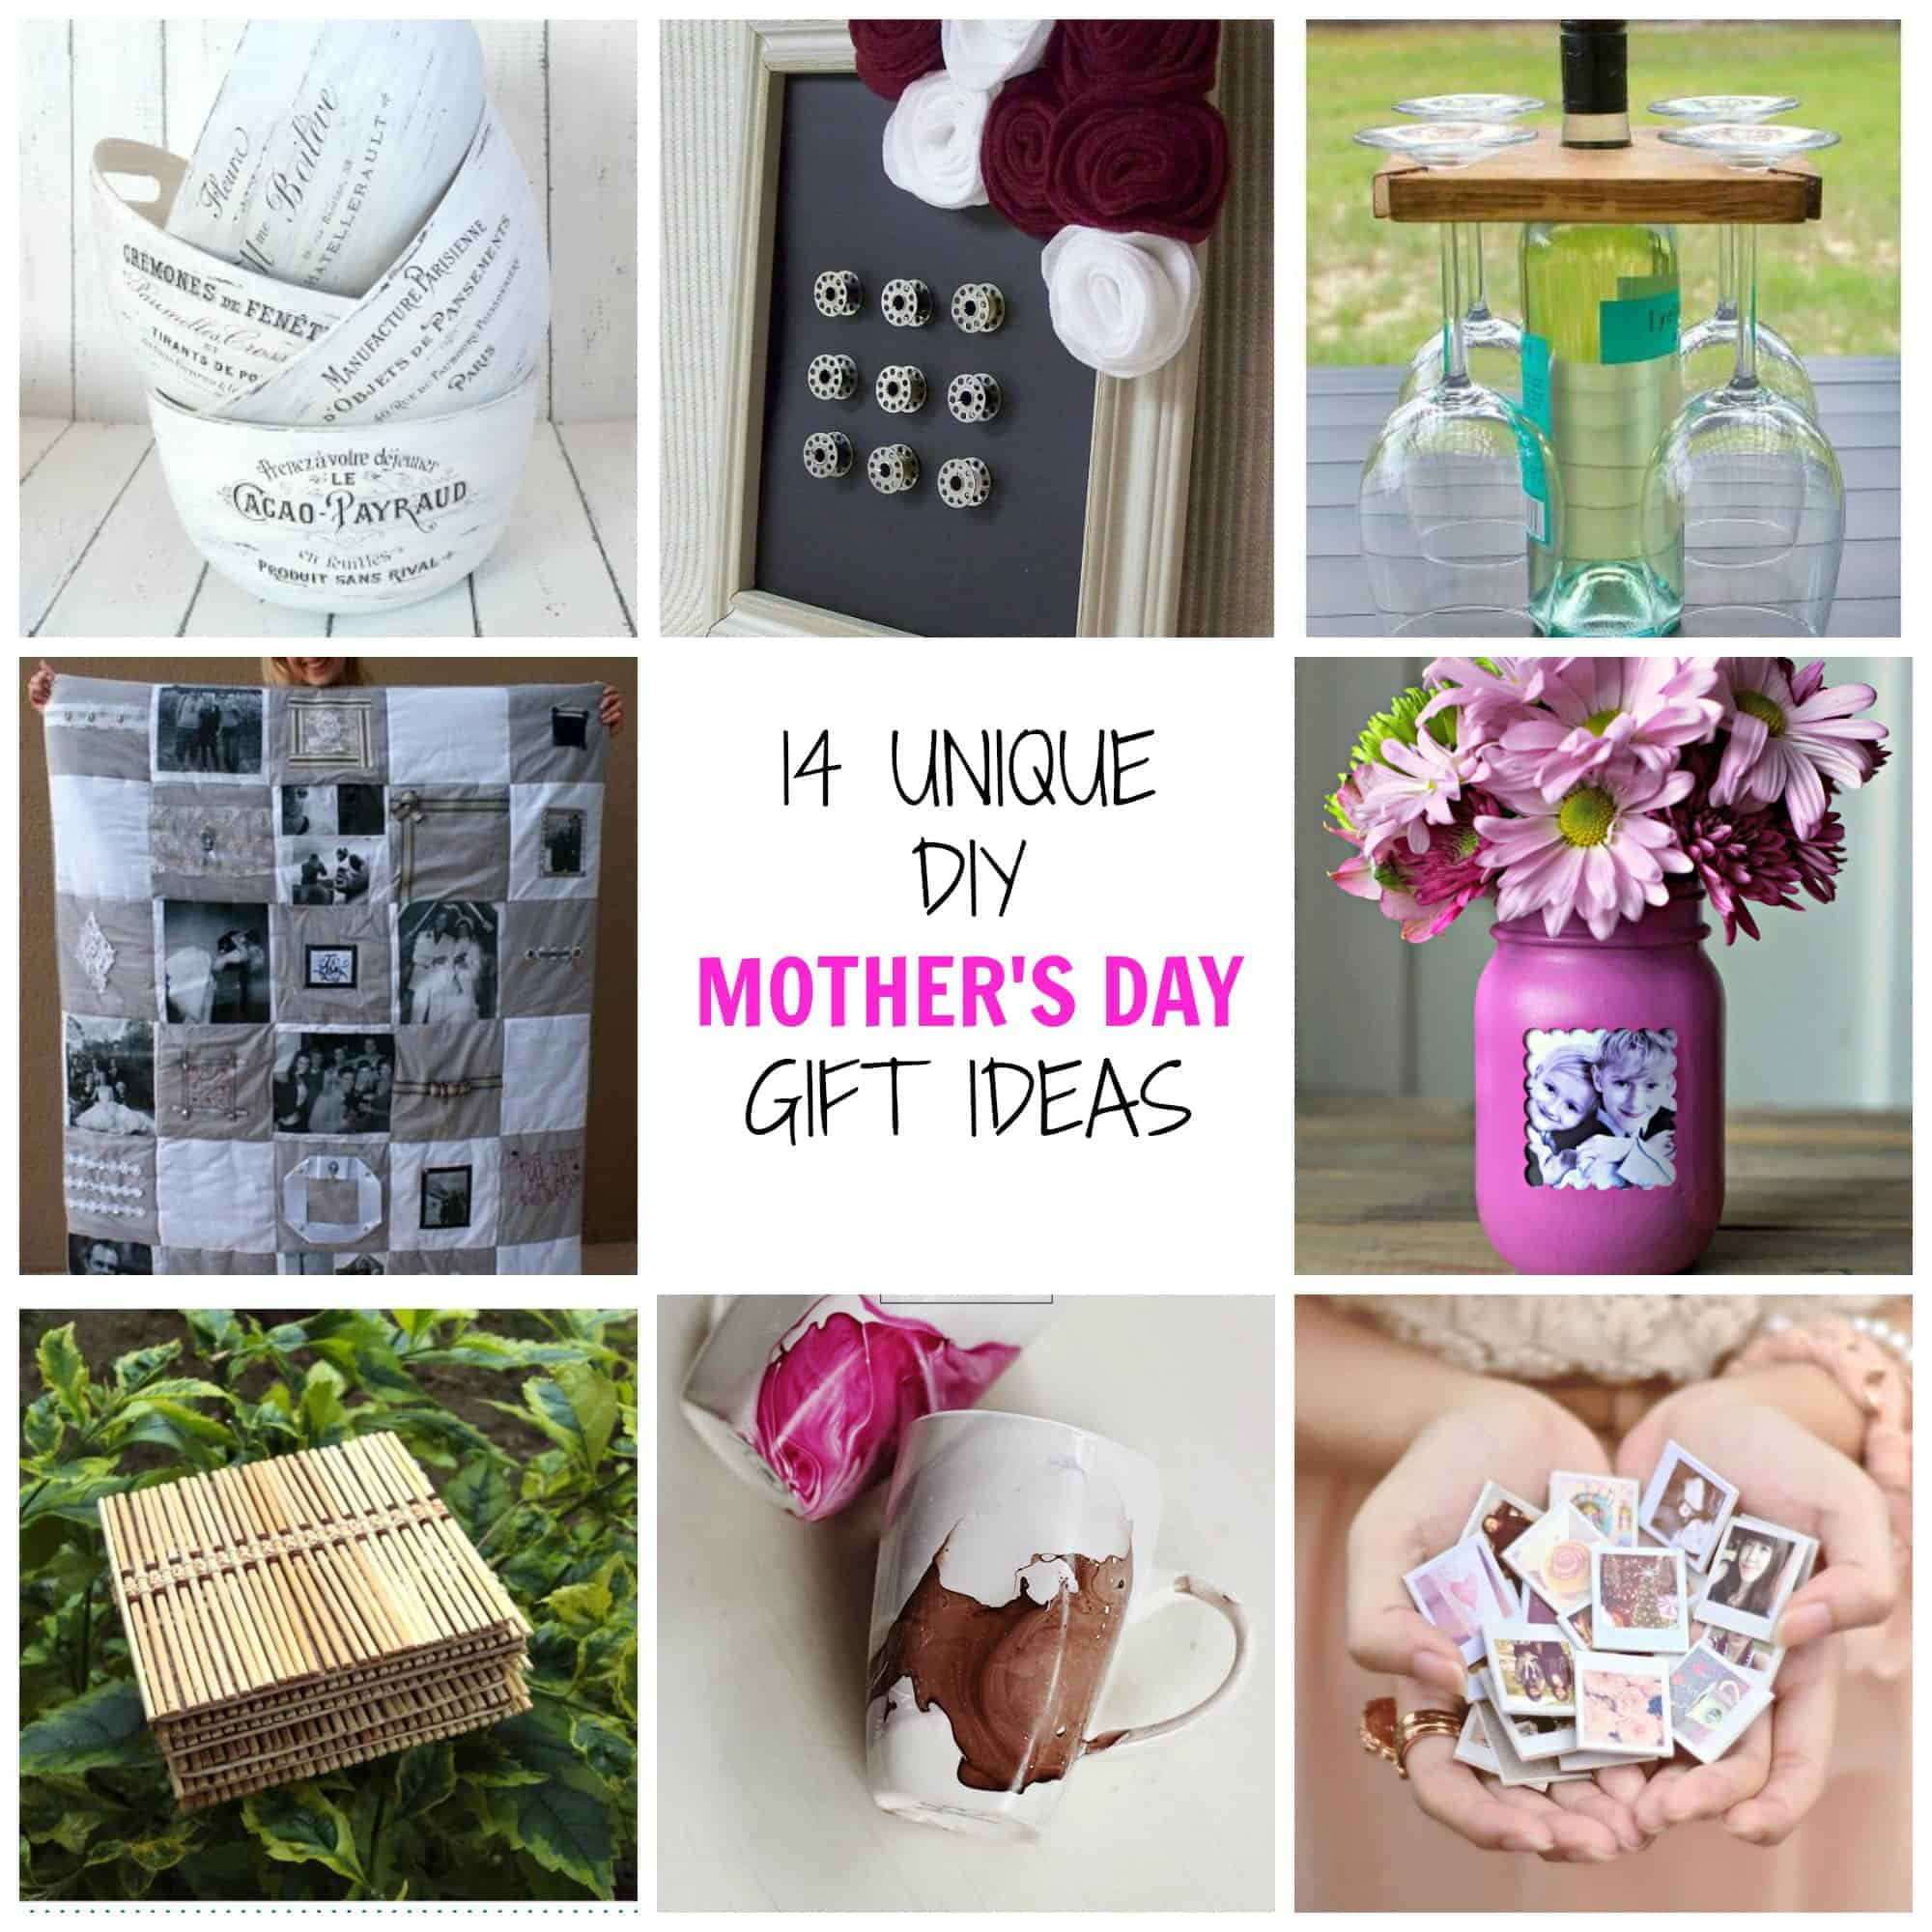 Unique DIY Gifts  14 Unique DIY Mother s Day Gifts Simplify Create Inspire